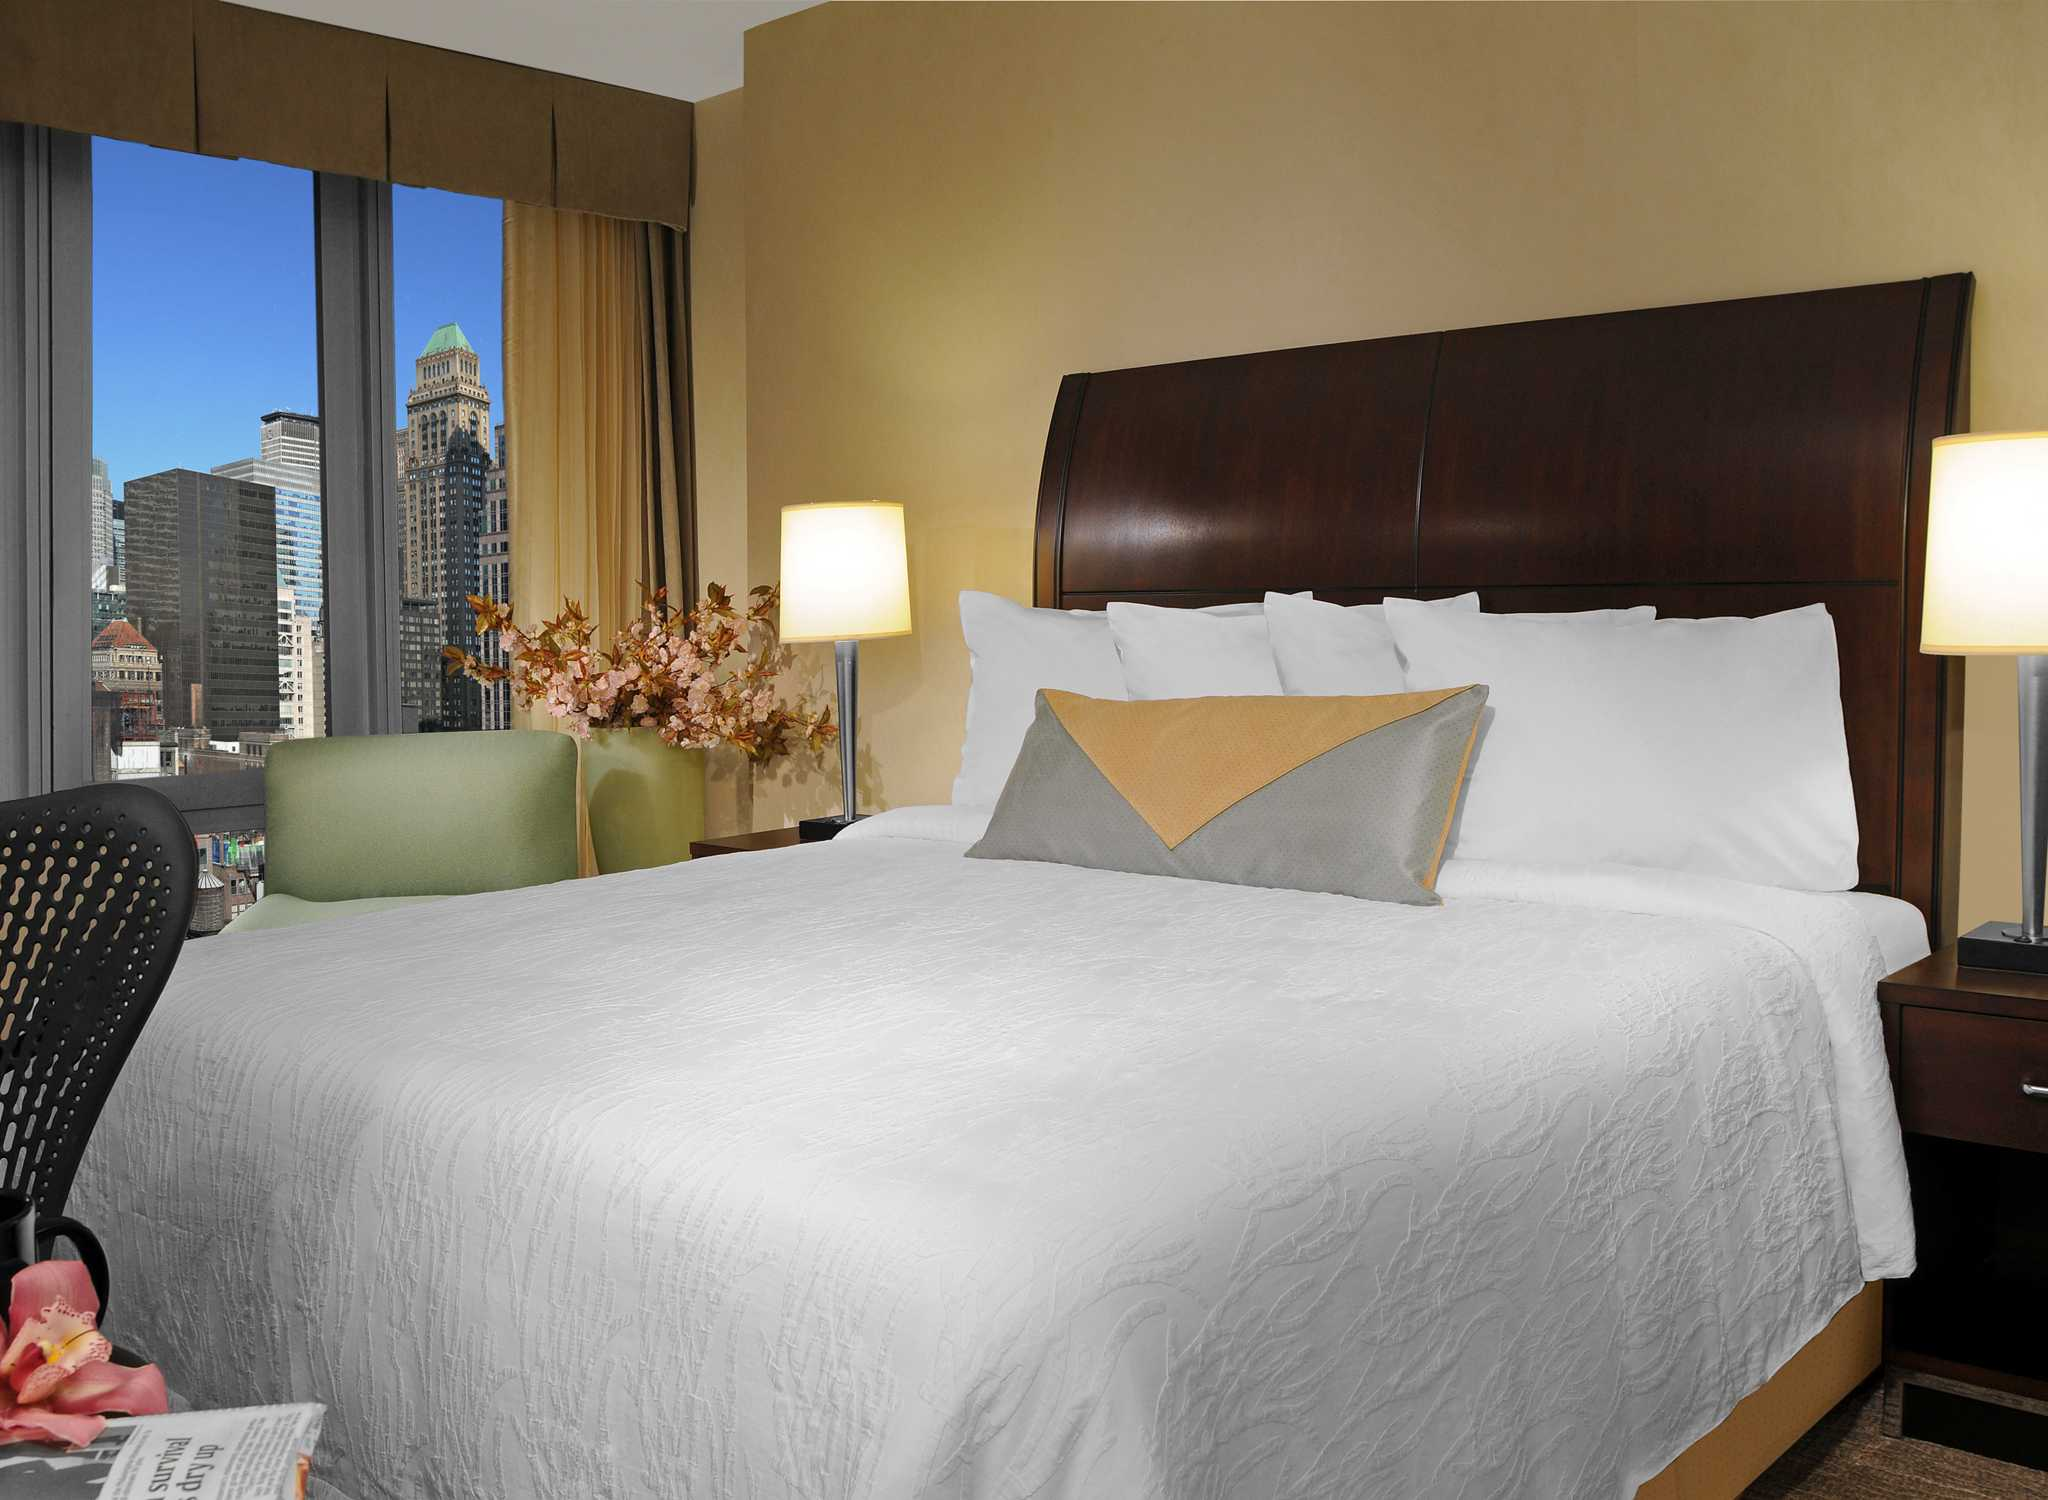 Hotel Hilton Garden Inn New York West 35th Street en Midtown Manhattan